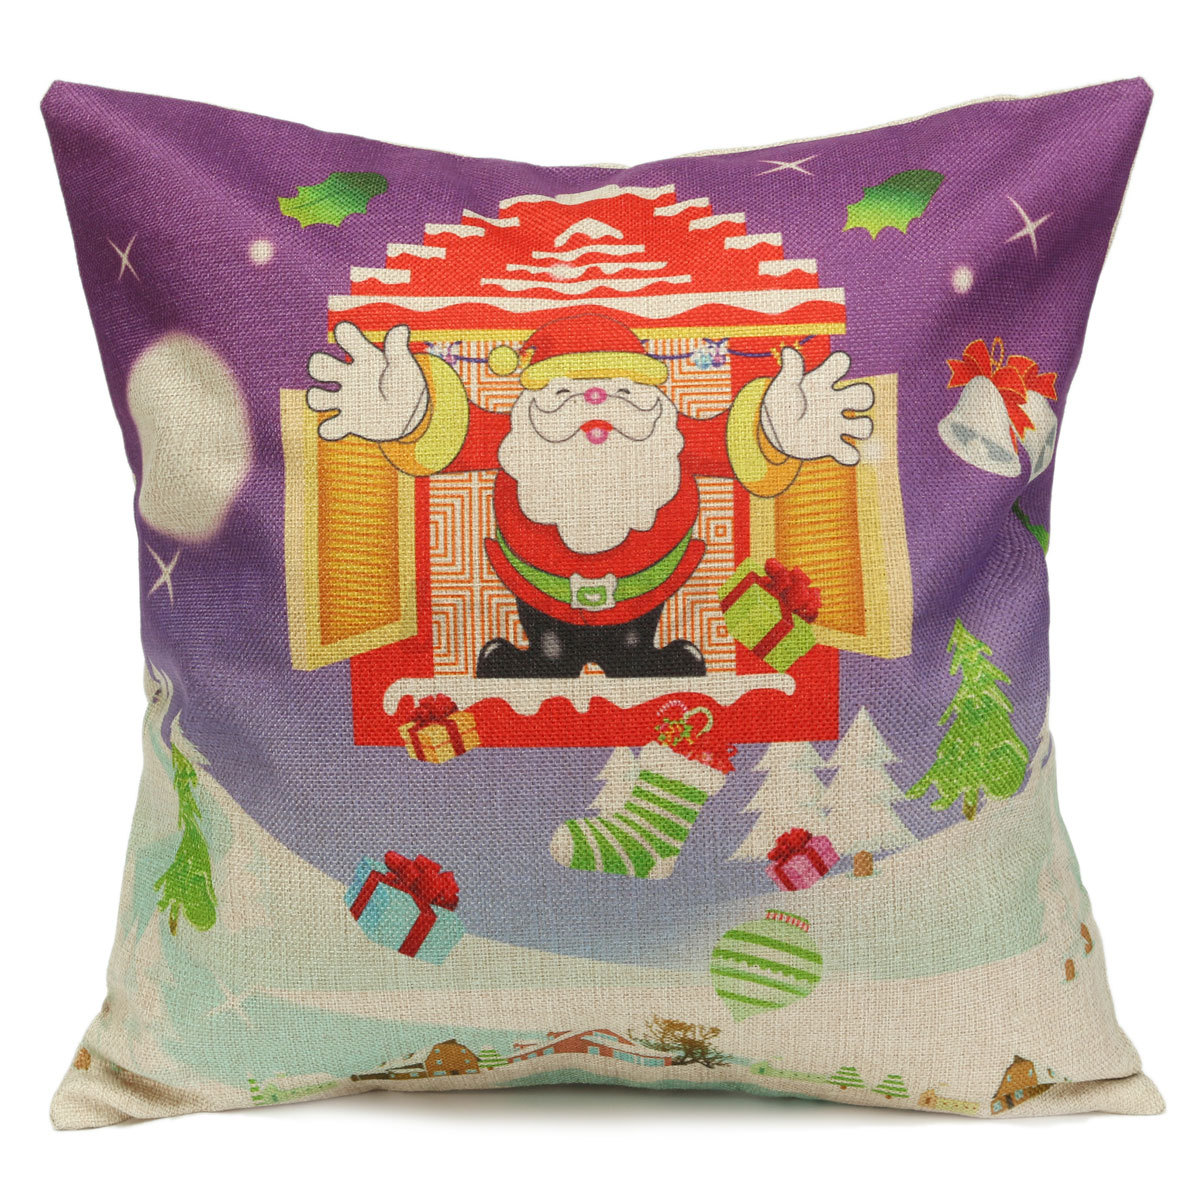 Cushion Covers Christmas Christmas Xmas Linen Cushion Cover Throw Pillow Case Home